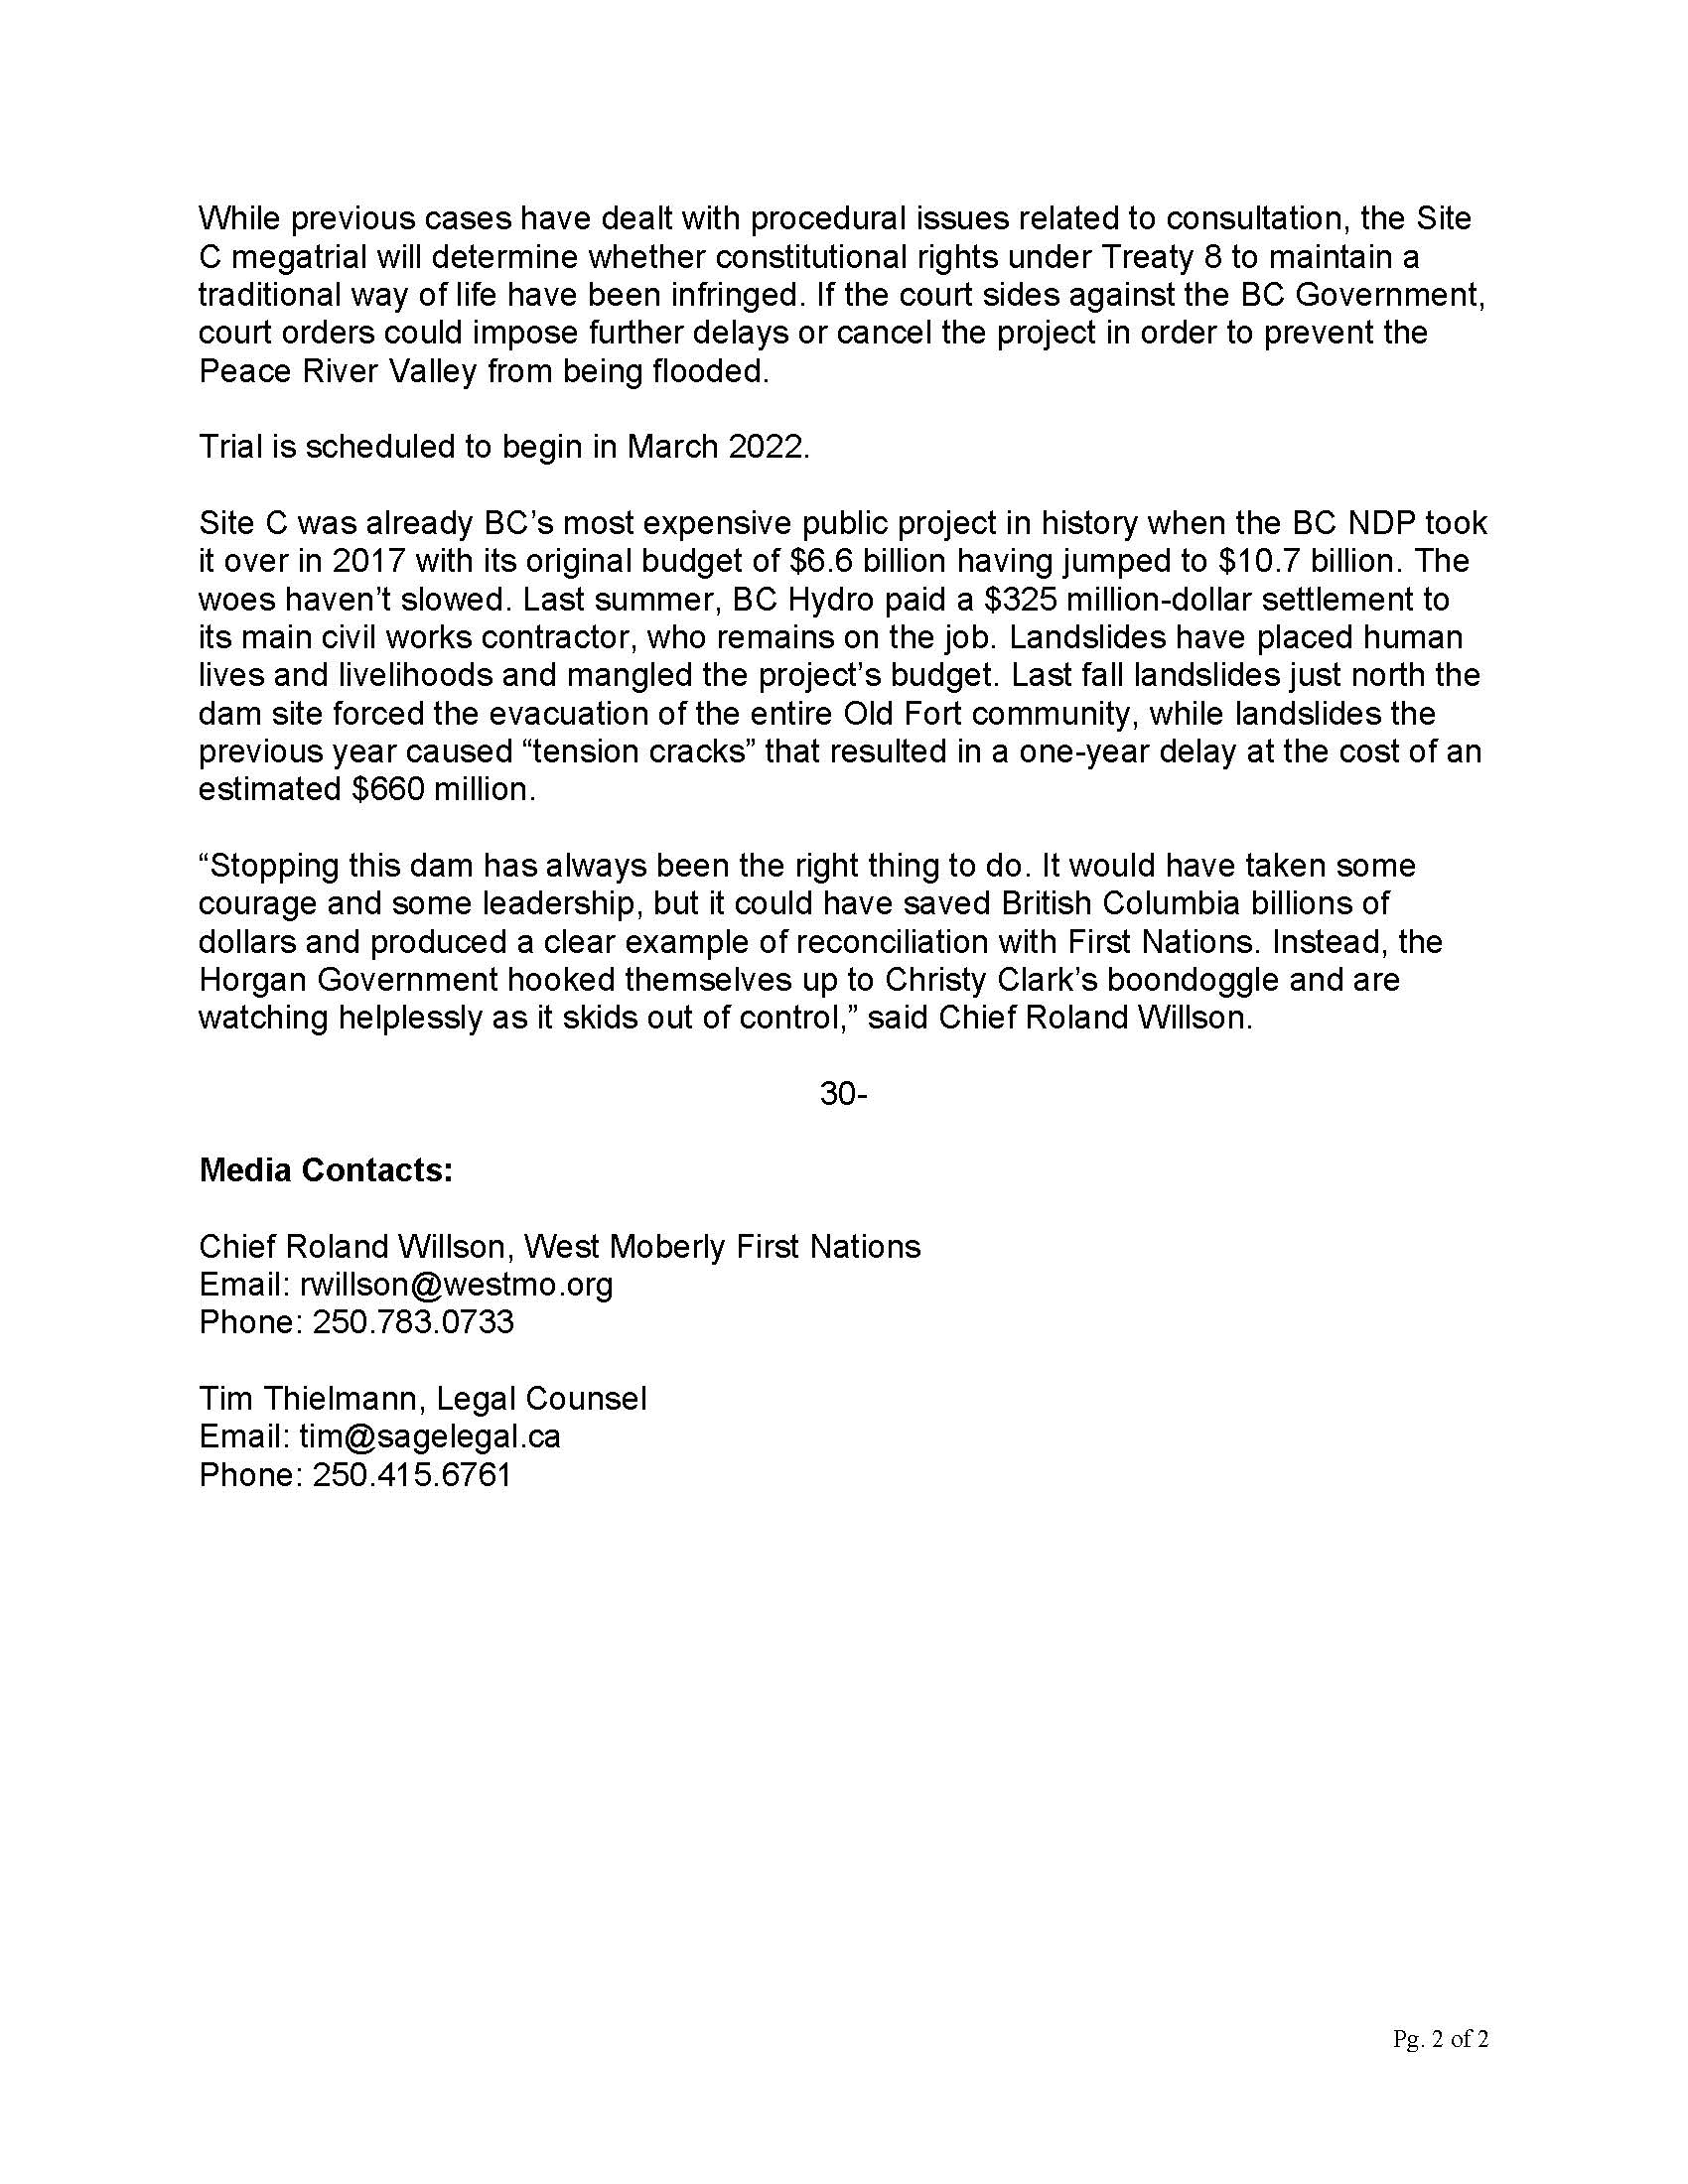 2019 08 27 NR Talks End Forcing Horgan Government into Mega Trial on Site C (final)_Page_2.jpg